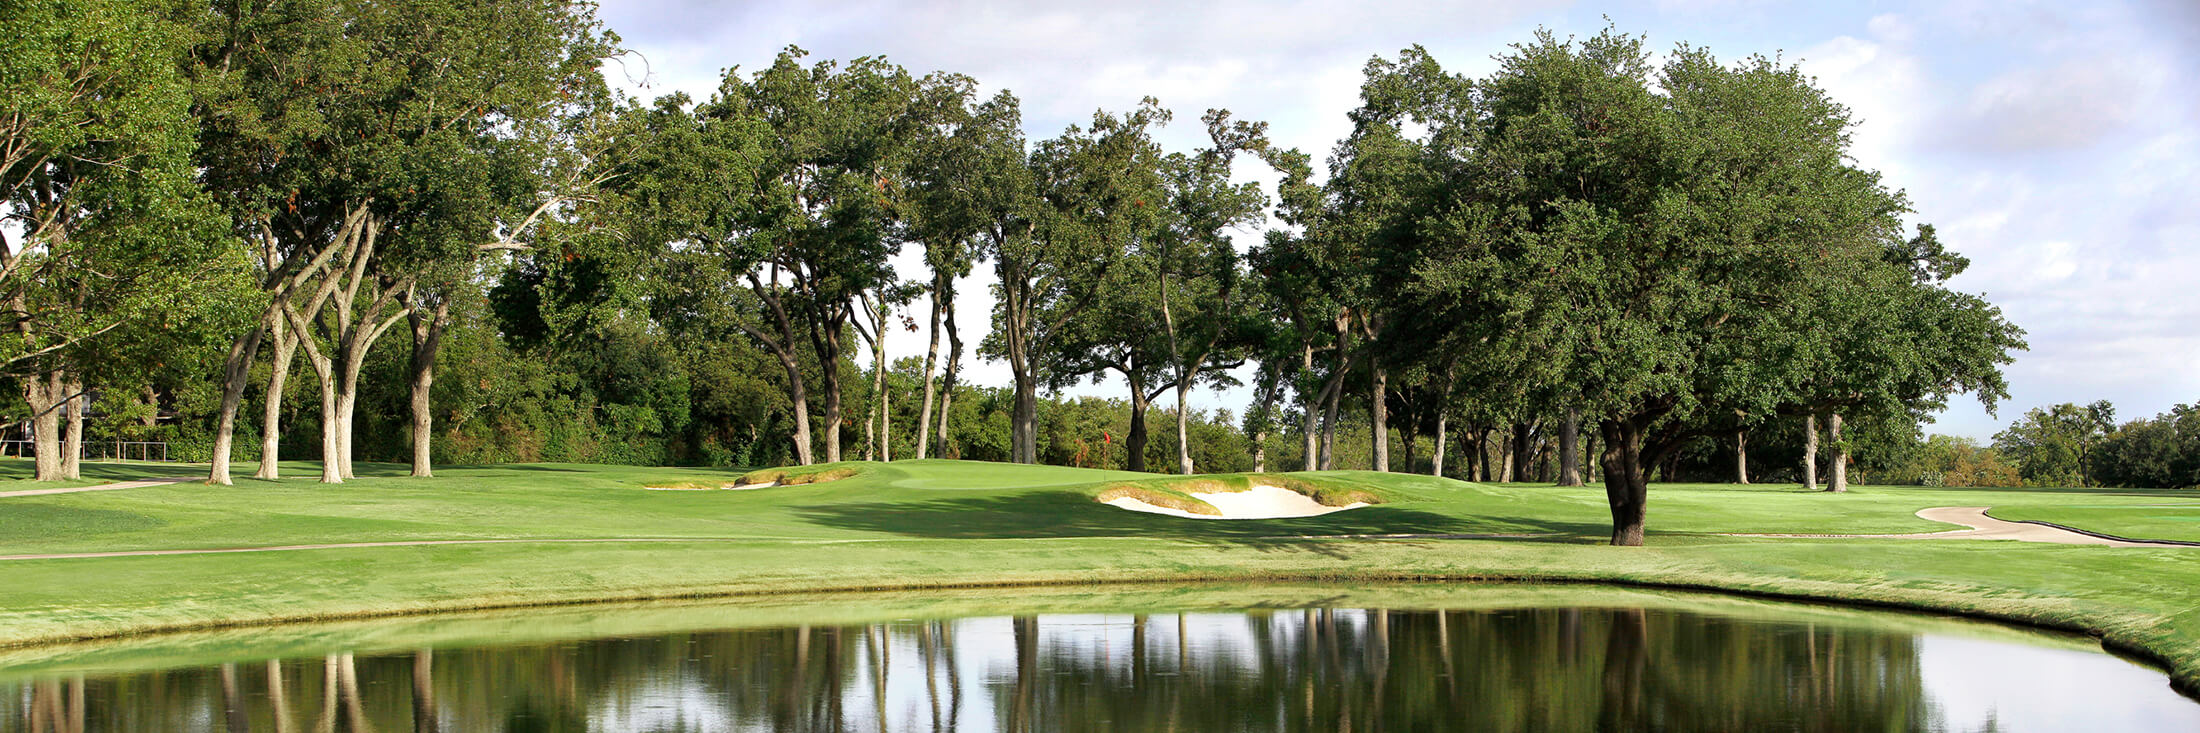 Golf Course Image - Northwood Club No. 12